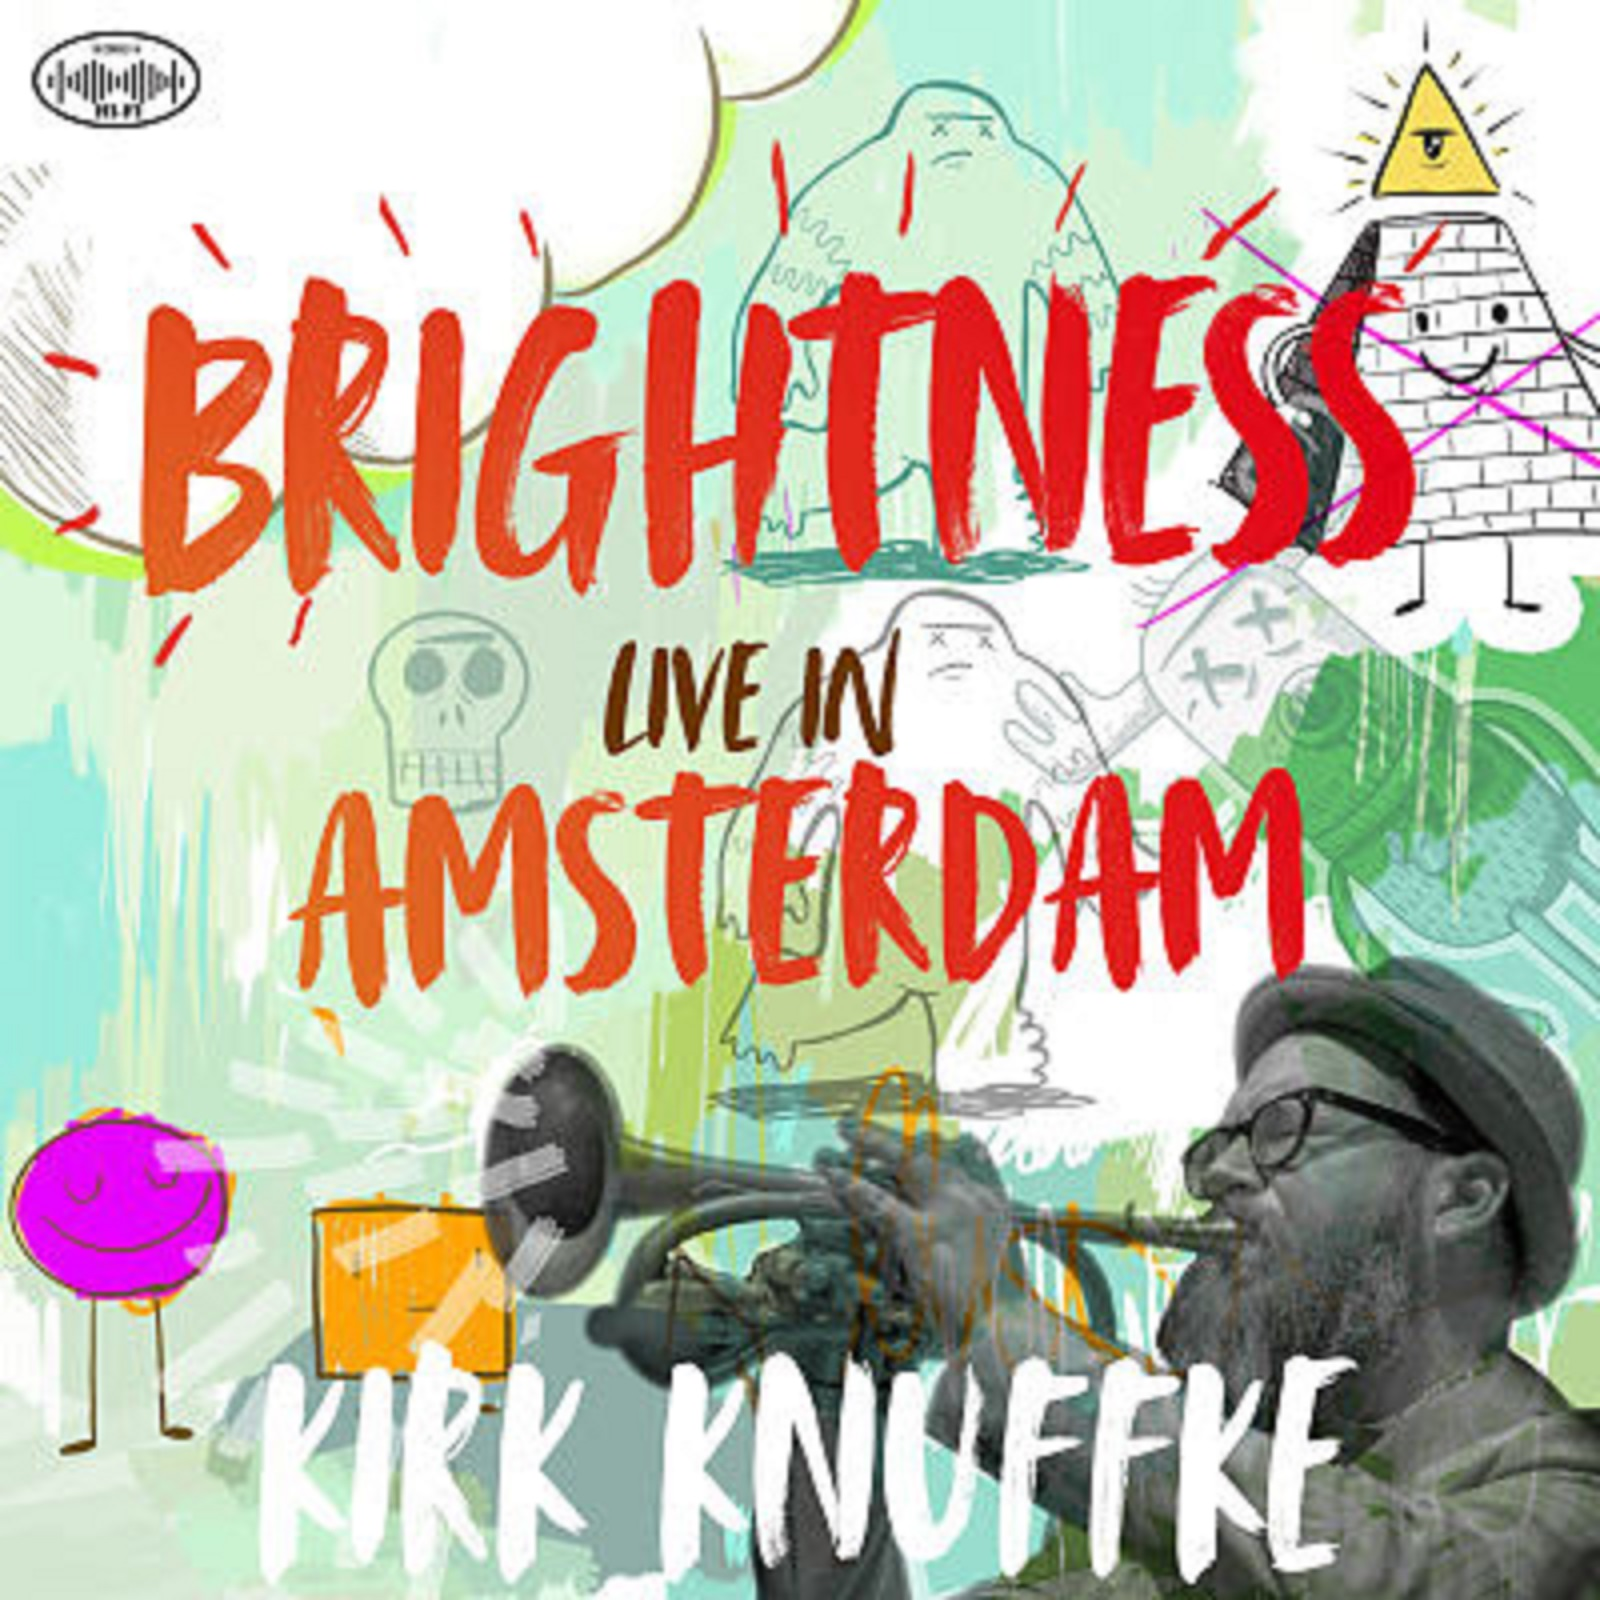 Kirk Knuffke To Release 'Brightness: Live In Amsterdam' on Feb. 21